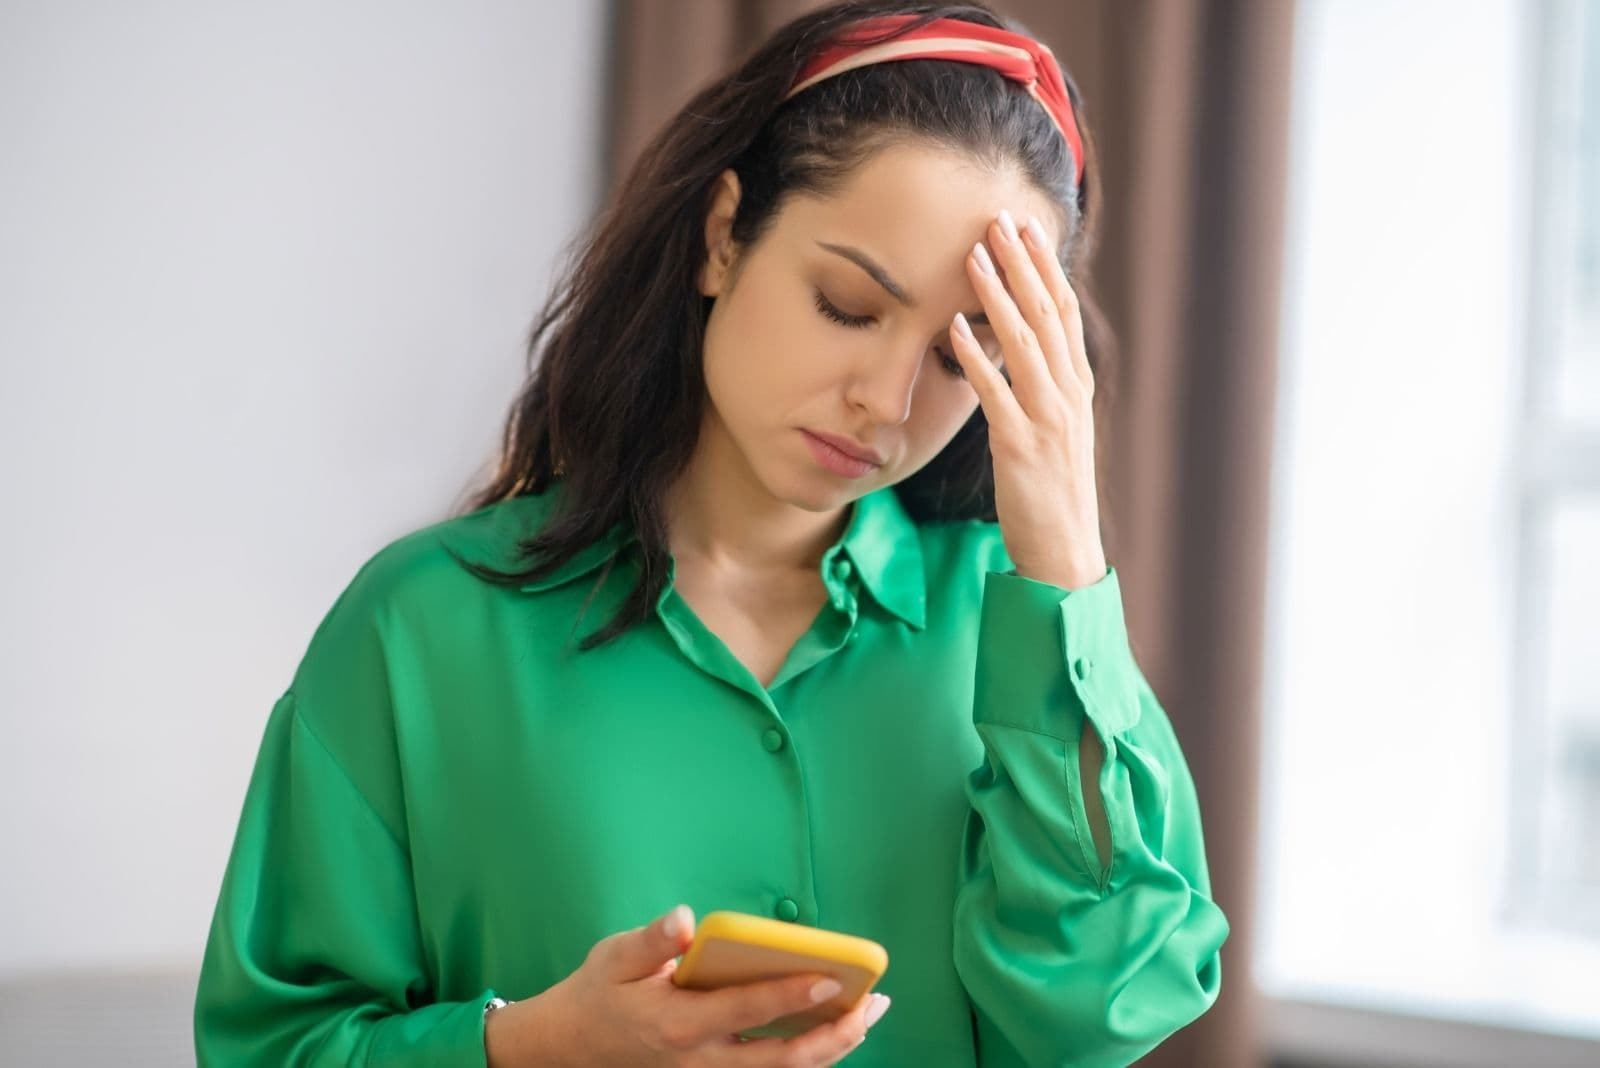 upset woman looking at the smartphone while standing inside home